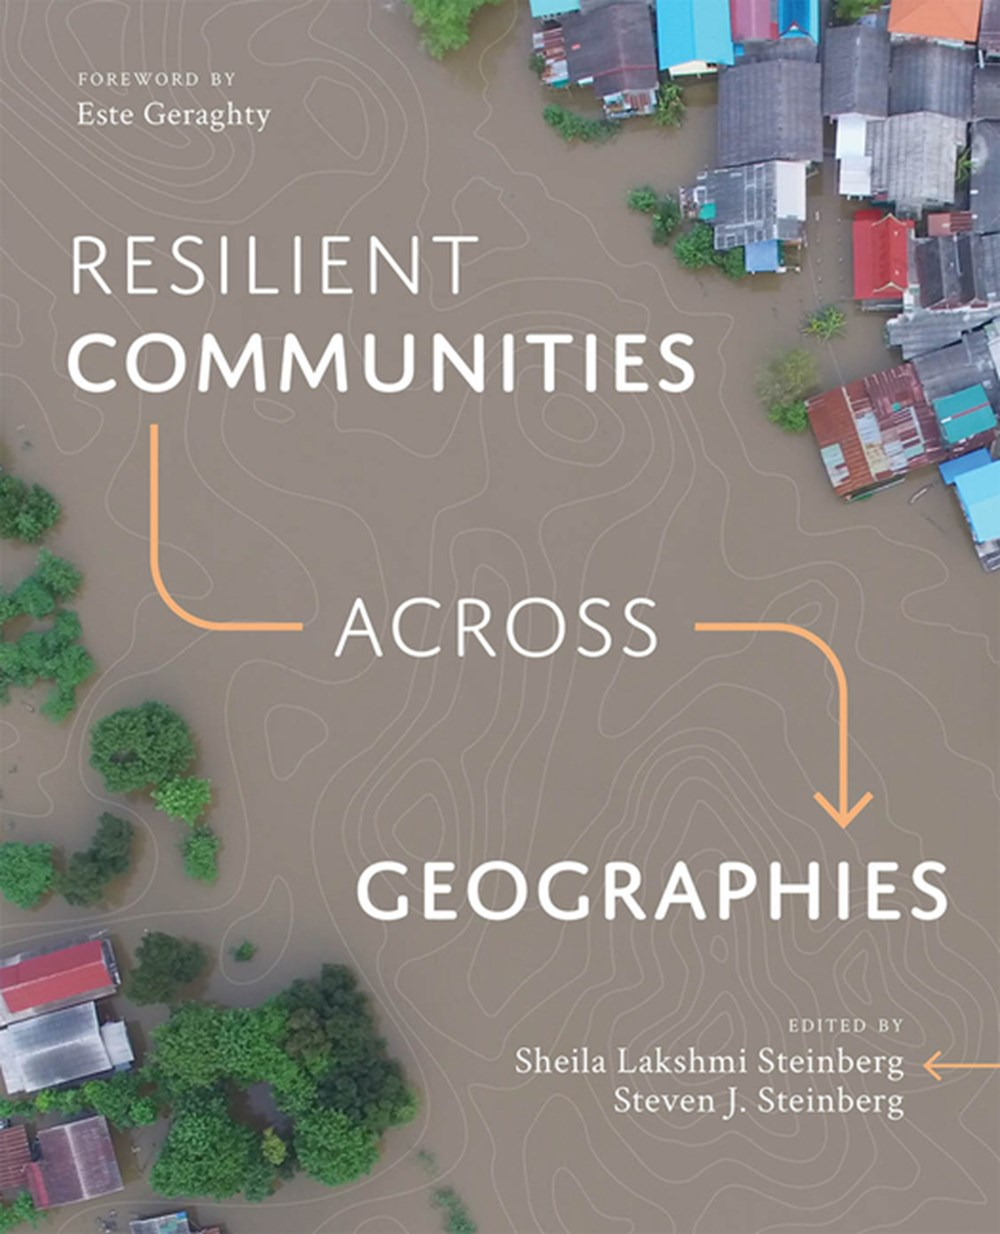 Resilient Communities Across Geographies